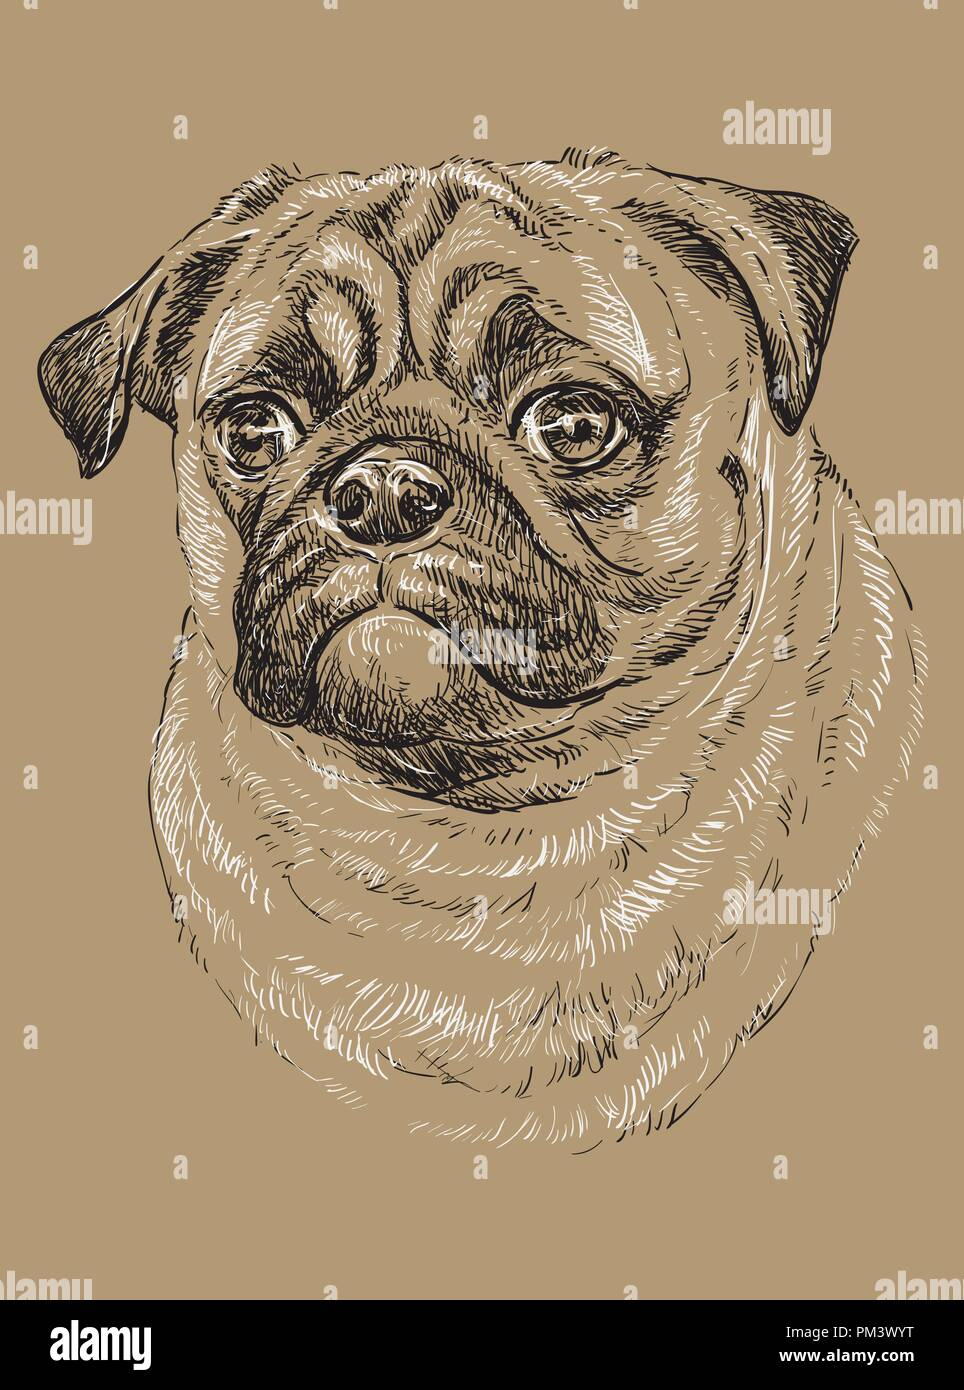 54d6b4d468d0 Pug vector hand drawing black and white illustration isolated on beige  background - Stock Image